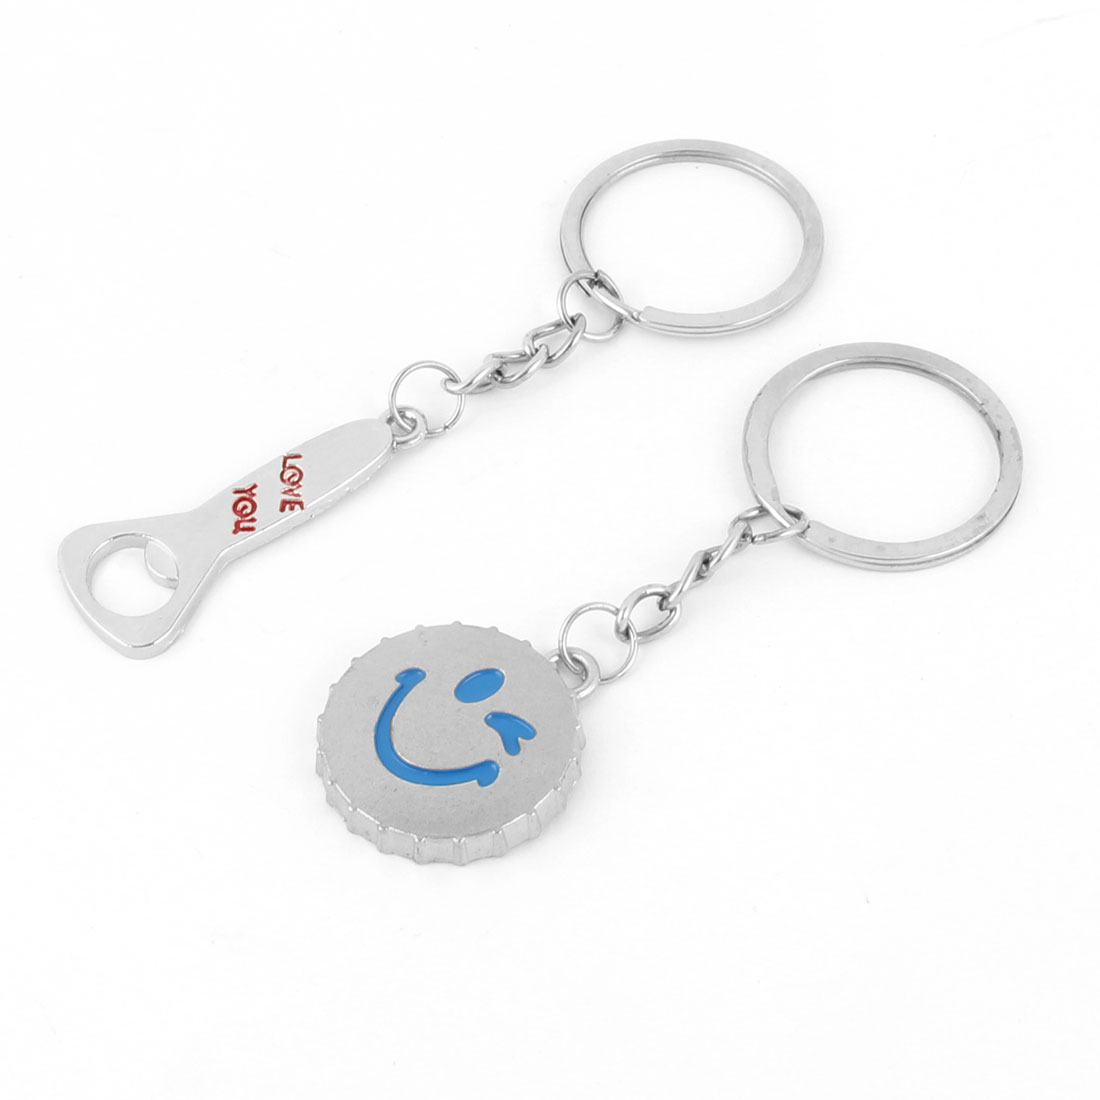 Metal Beer Cap Bottle Opener Shaped Pendant Couple Keychain Key Ring Holder Pair